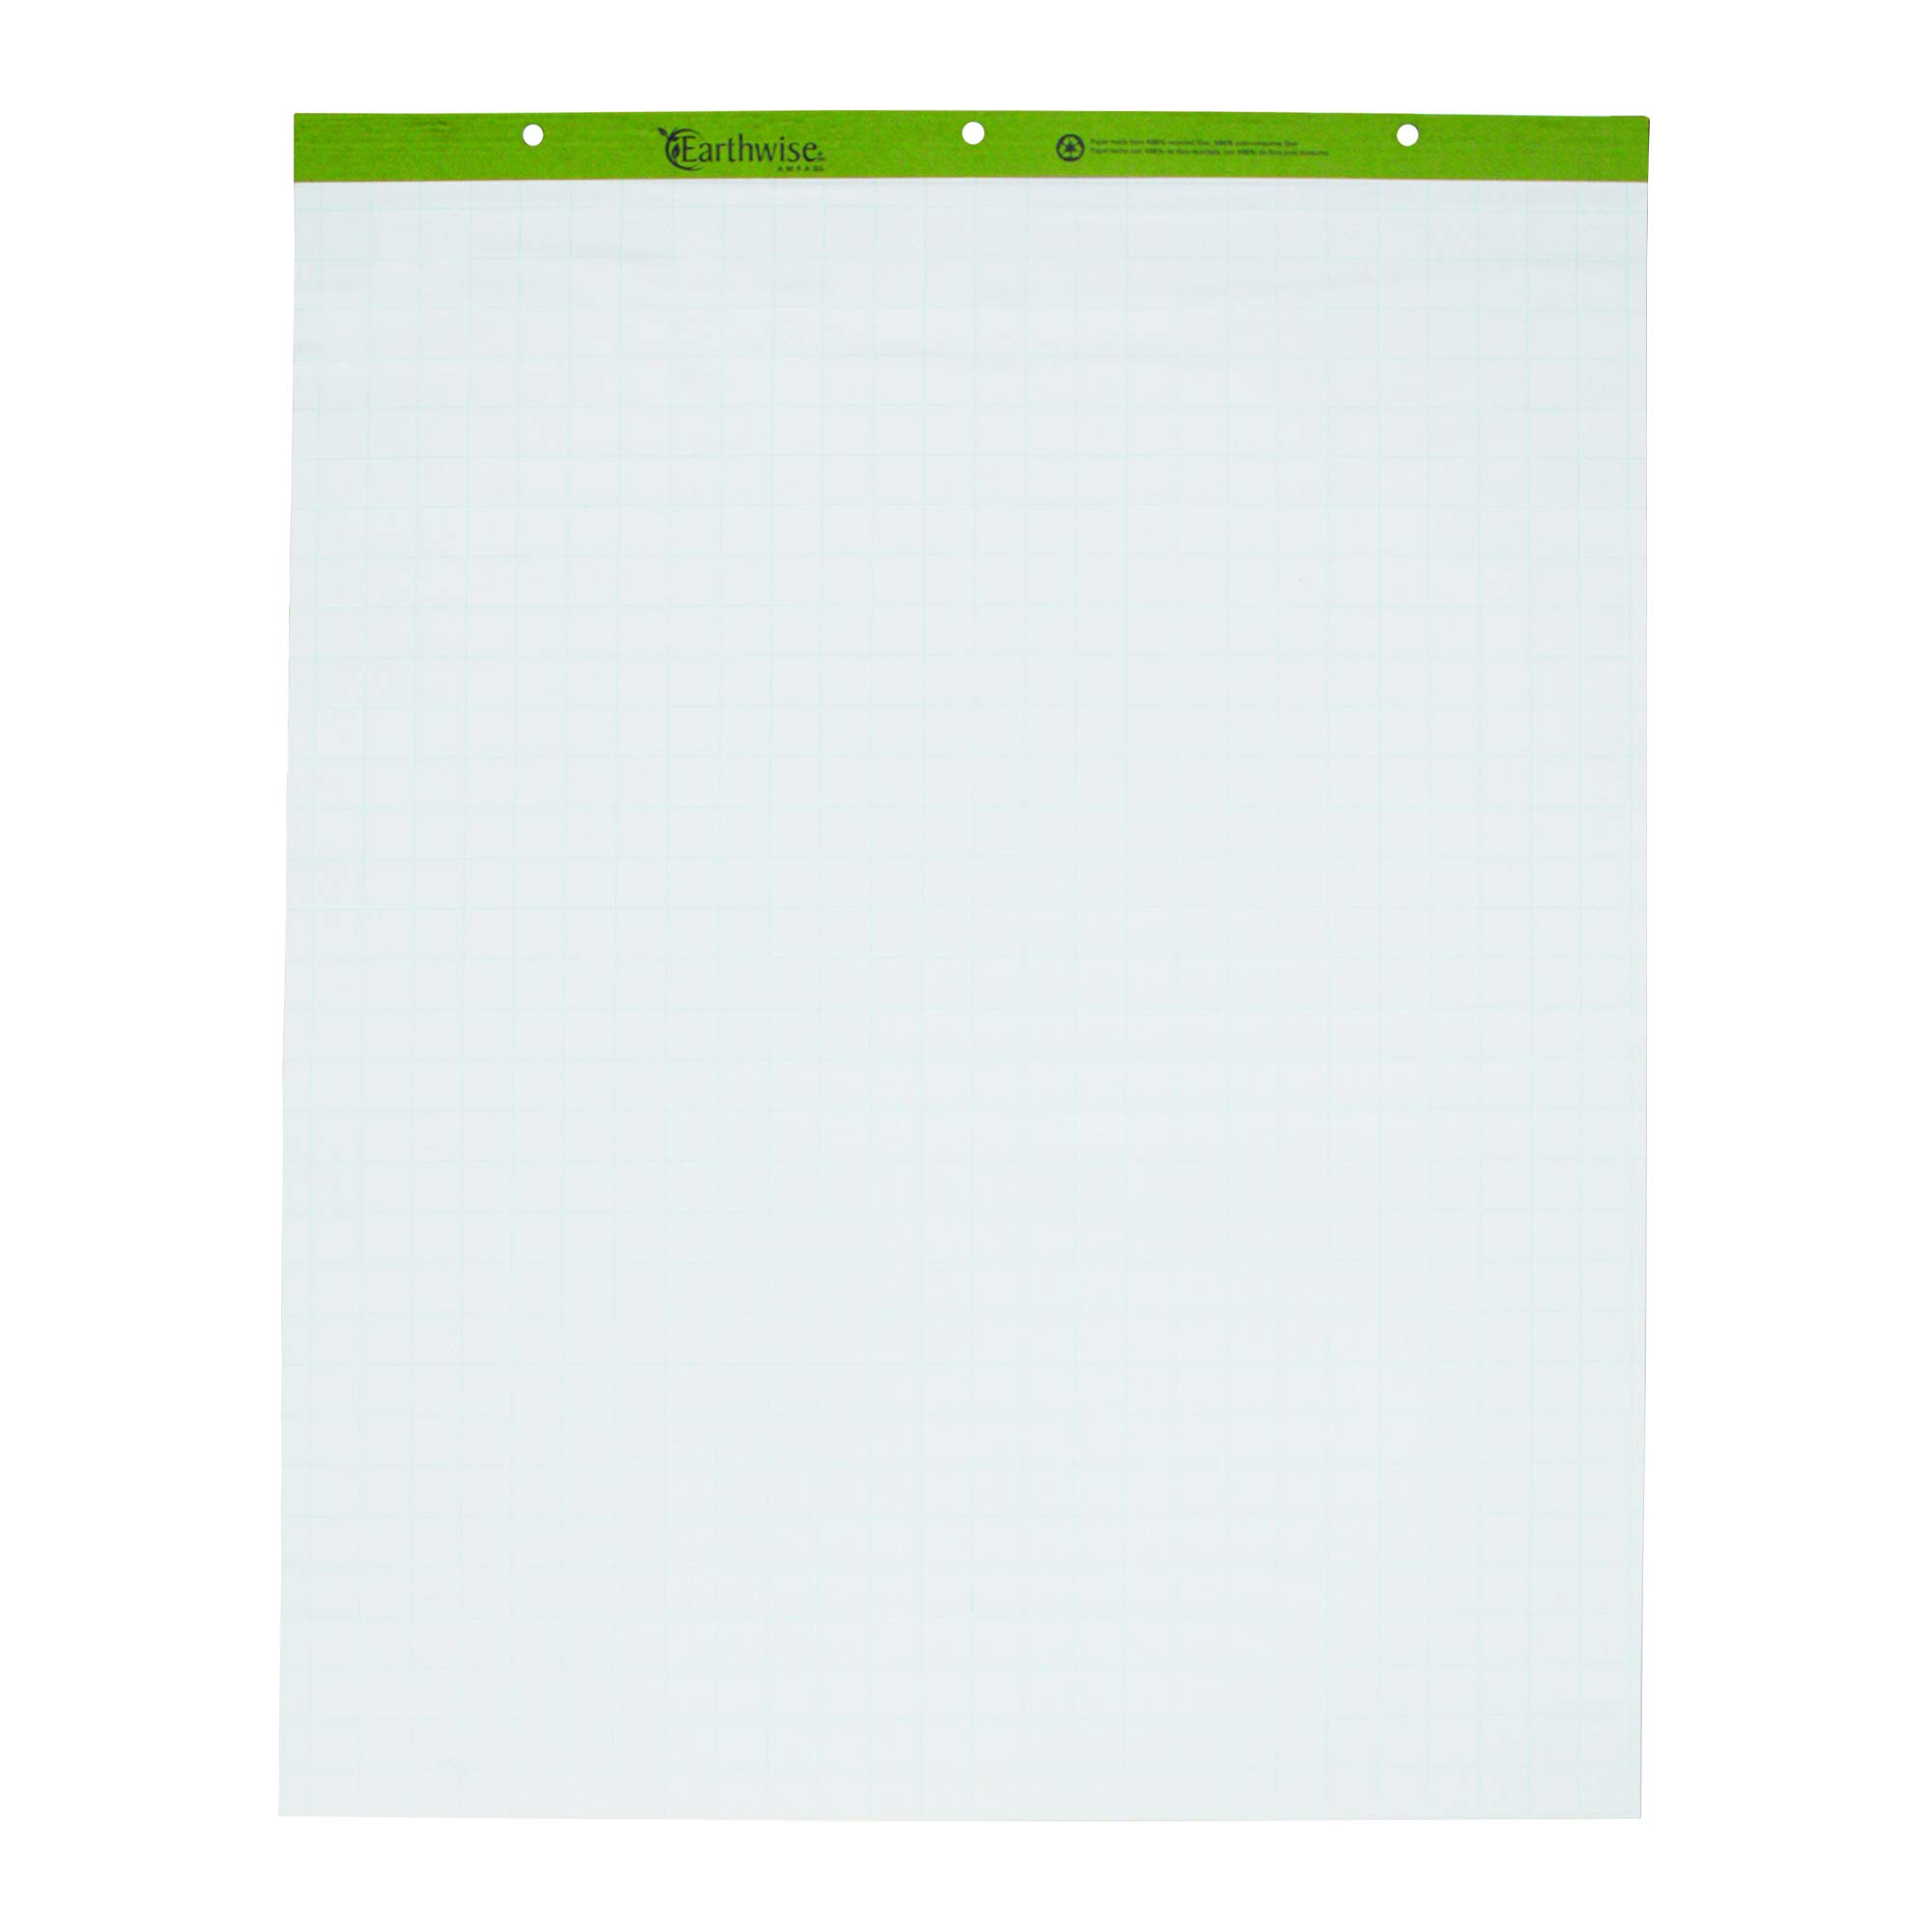 Ampad 24-032R Evidence Flip Chart Pads Ruled with 1-Inch Squares, 27x34, 50 Sheets Per Pad, 2 Pads Per Pack by Ampad